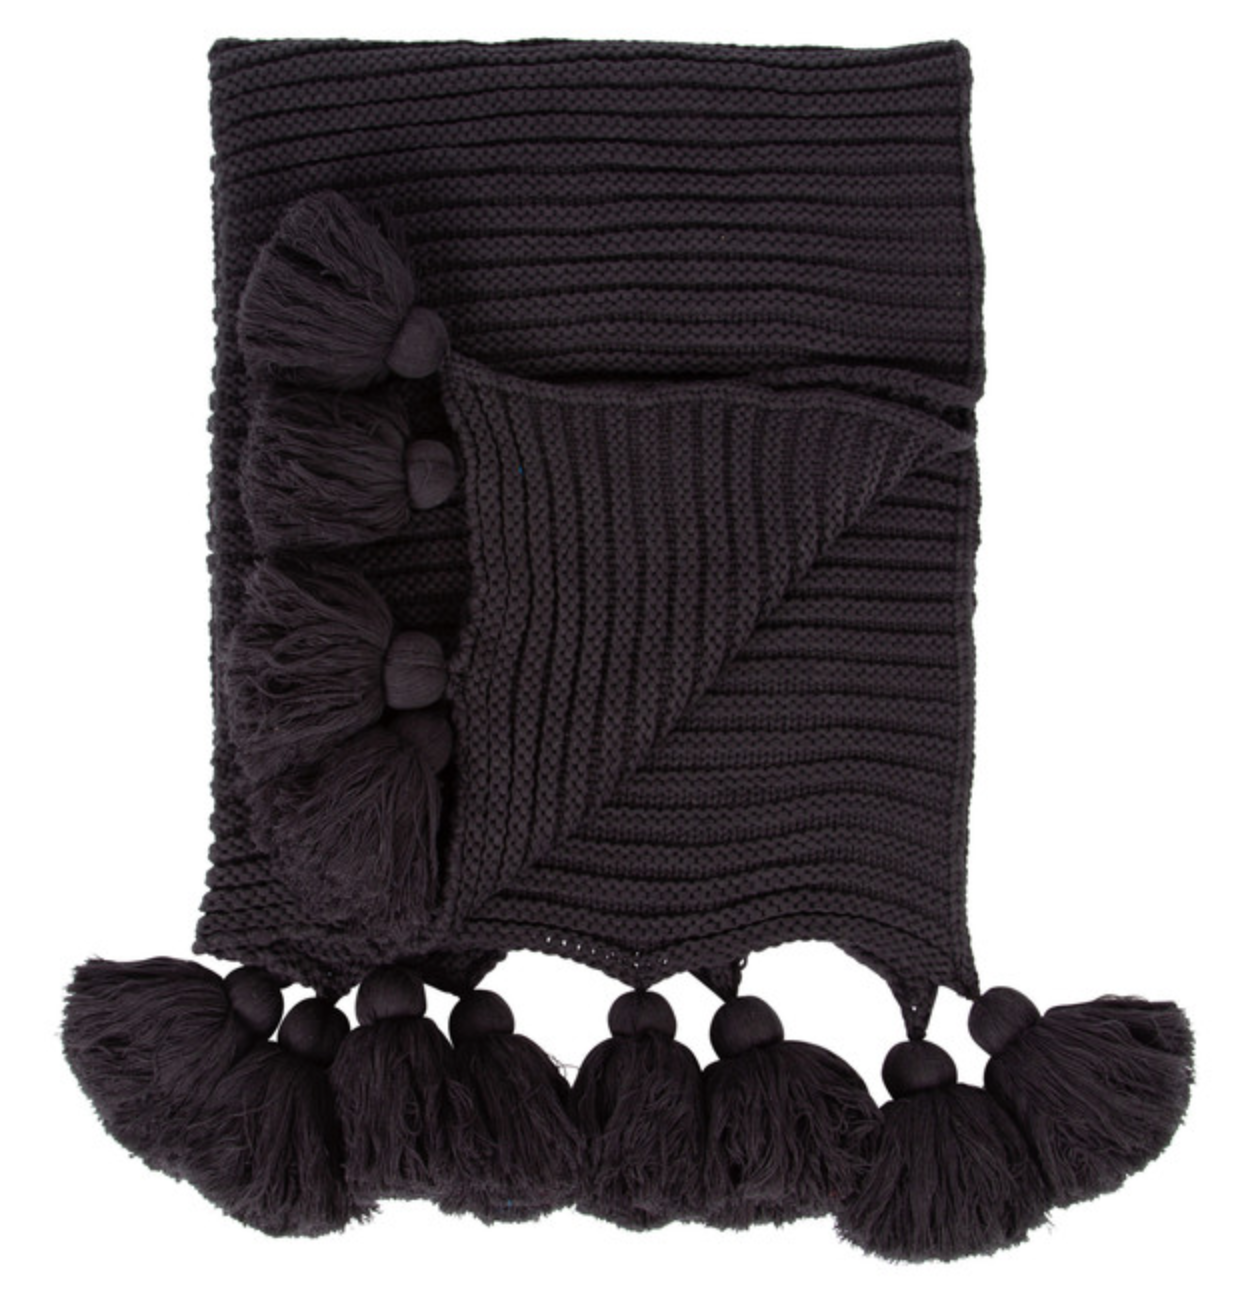 Black throw with tassels